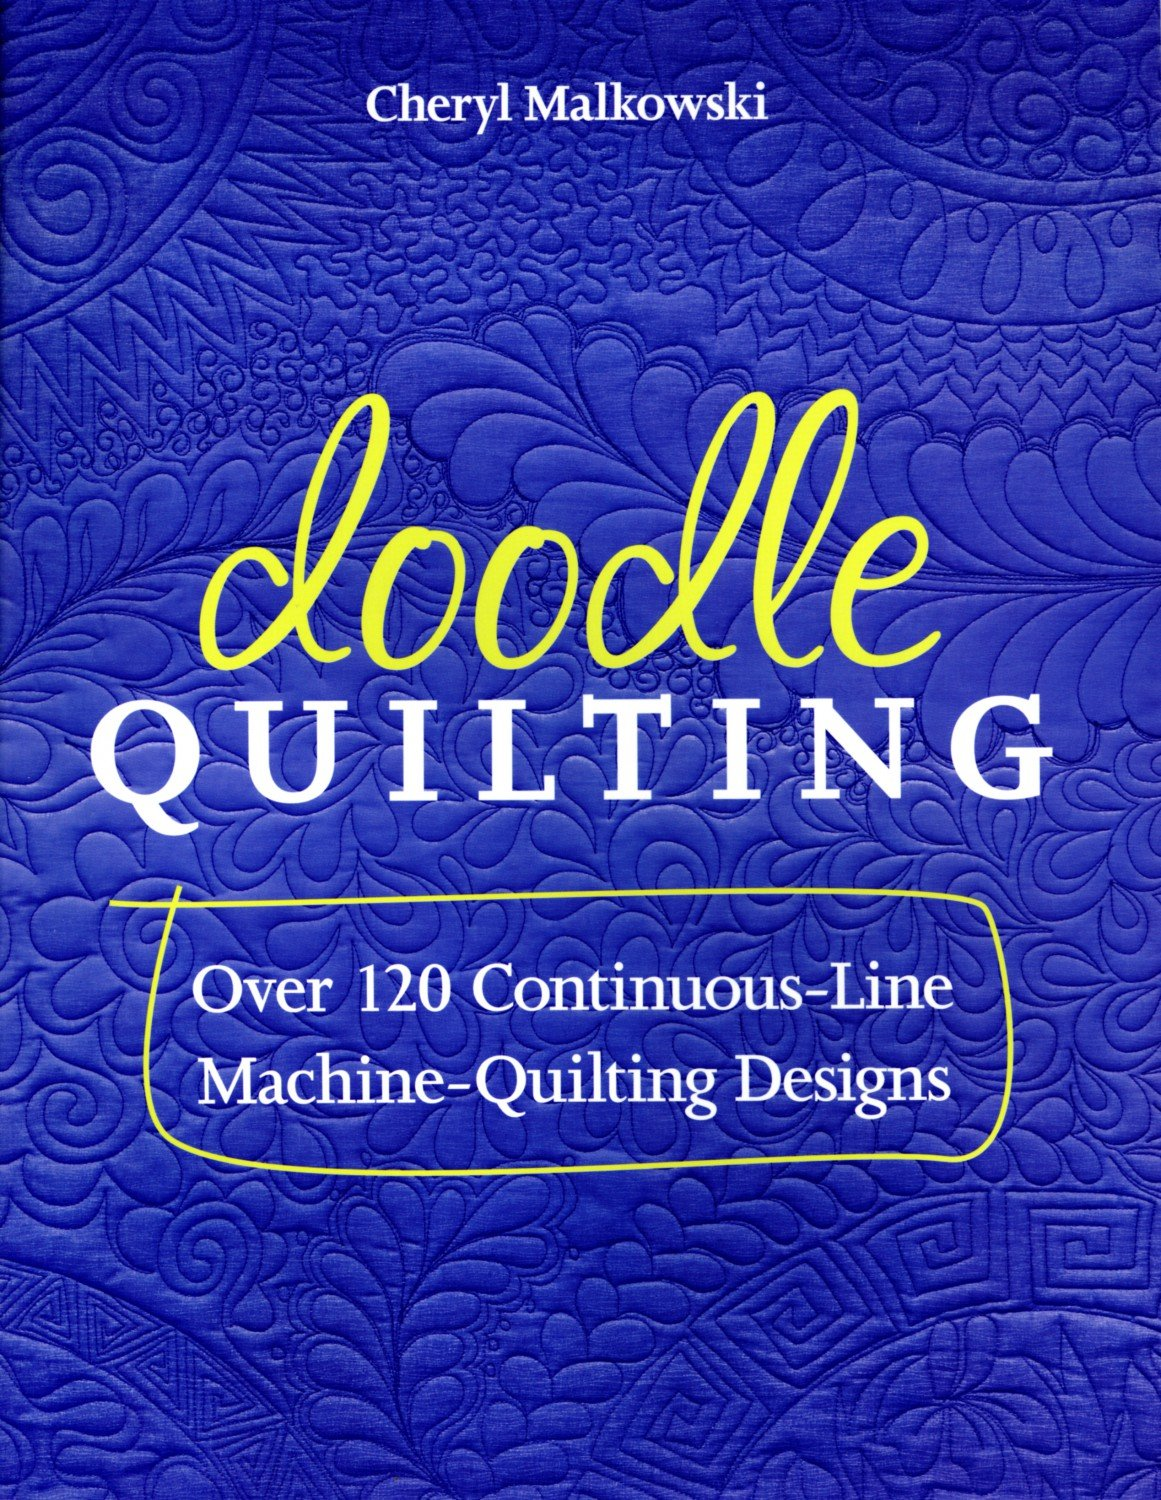 Doodle Quilting - Over 120 Continuous-Line Machine-Quilting Designs